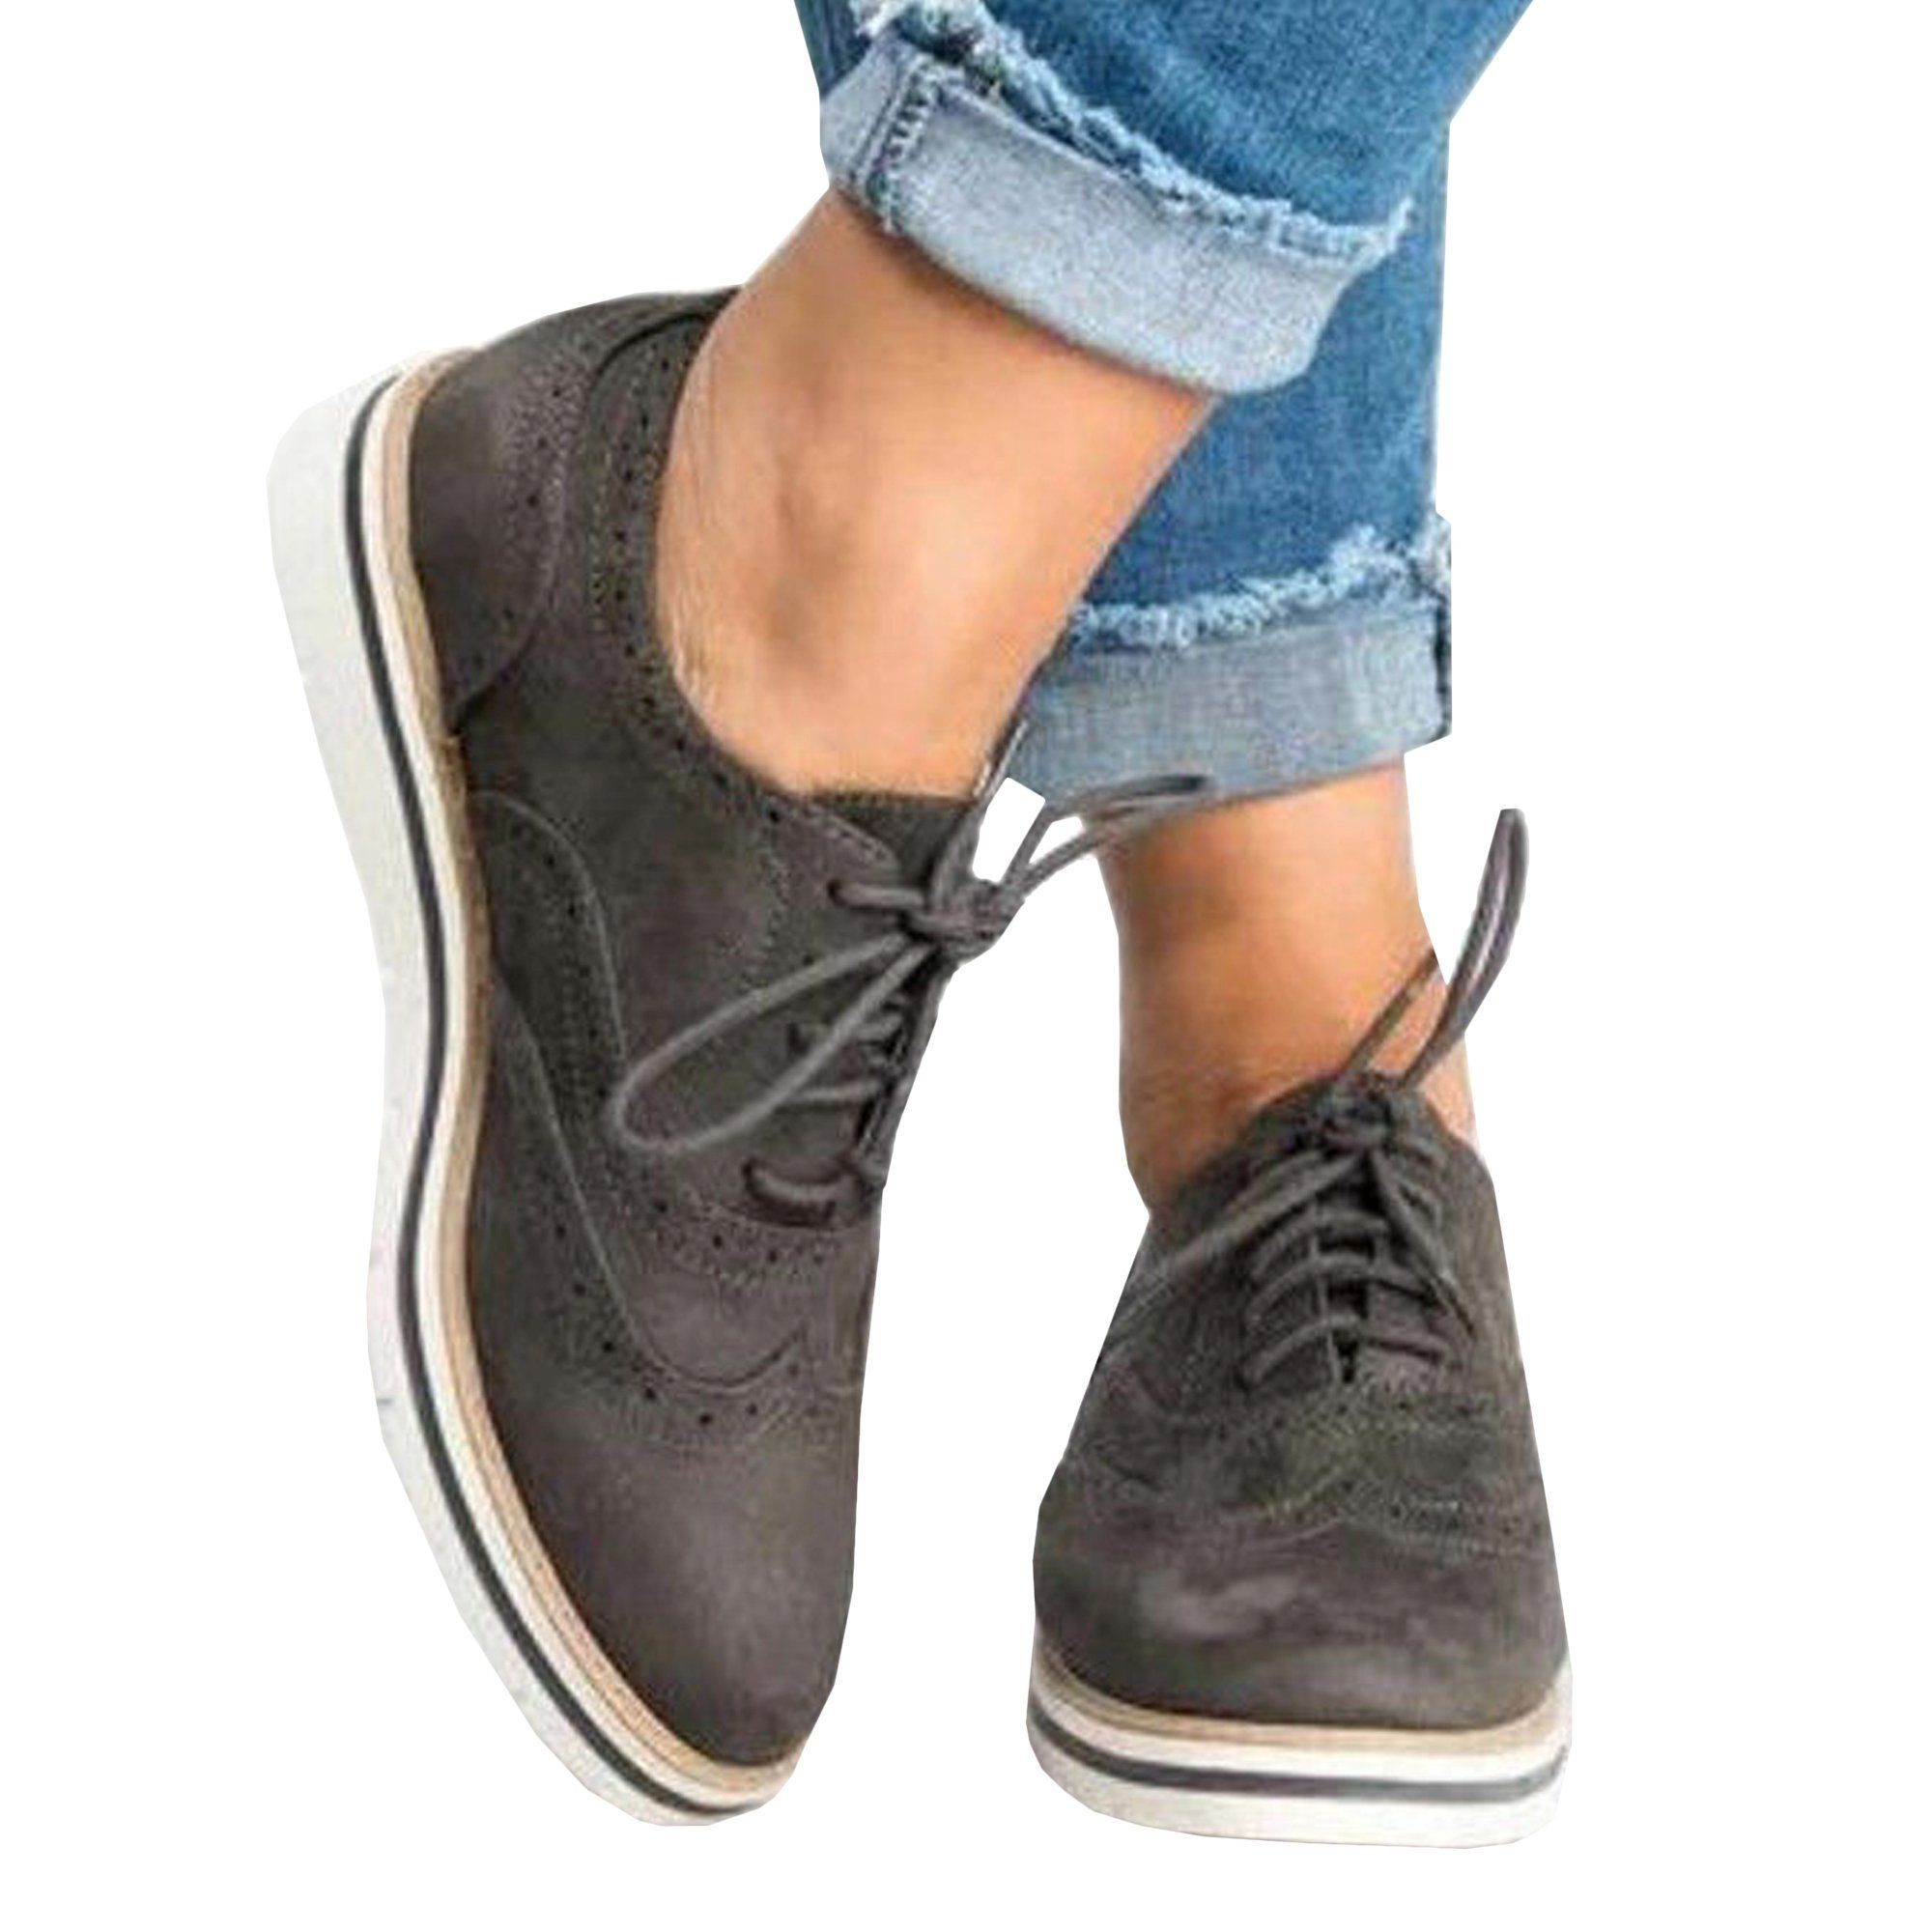 Women's Oxfords Lace Up Flat Smart Work Sports Brogue Trainers Casual Shoes